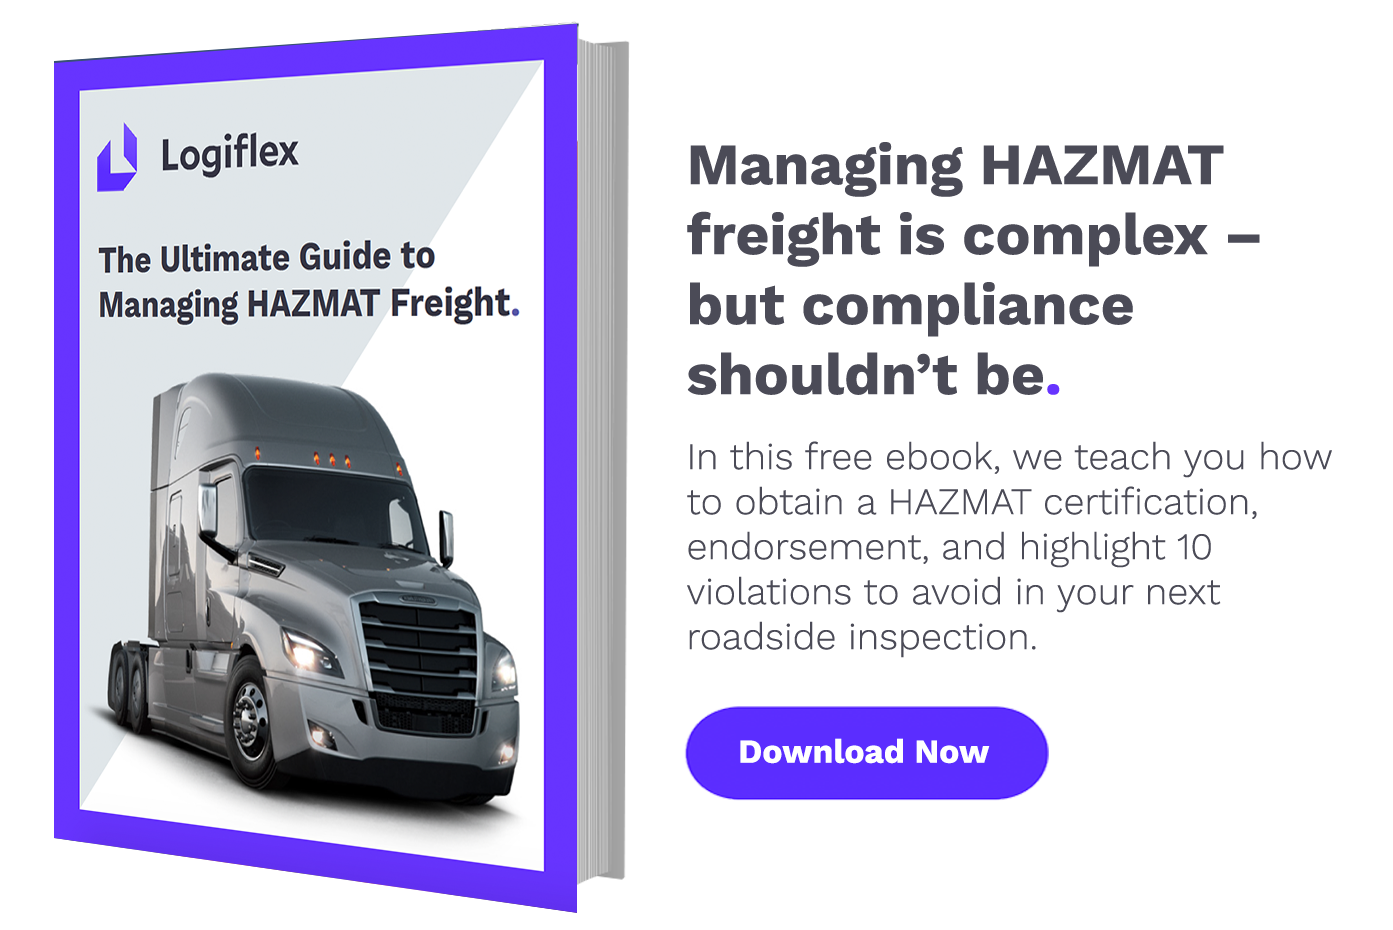 The Ultimate Guide to Managing HAZMAT Freight